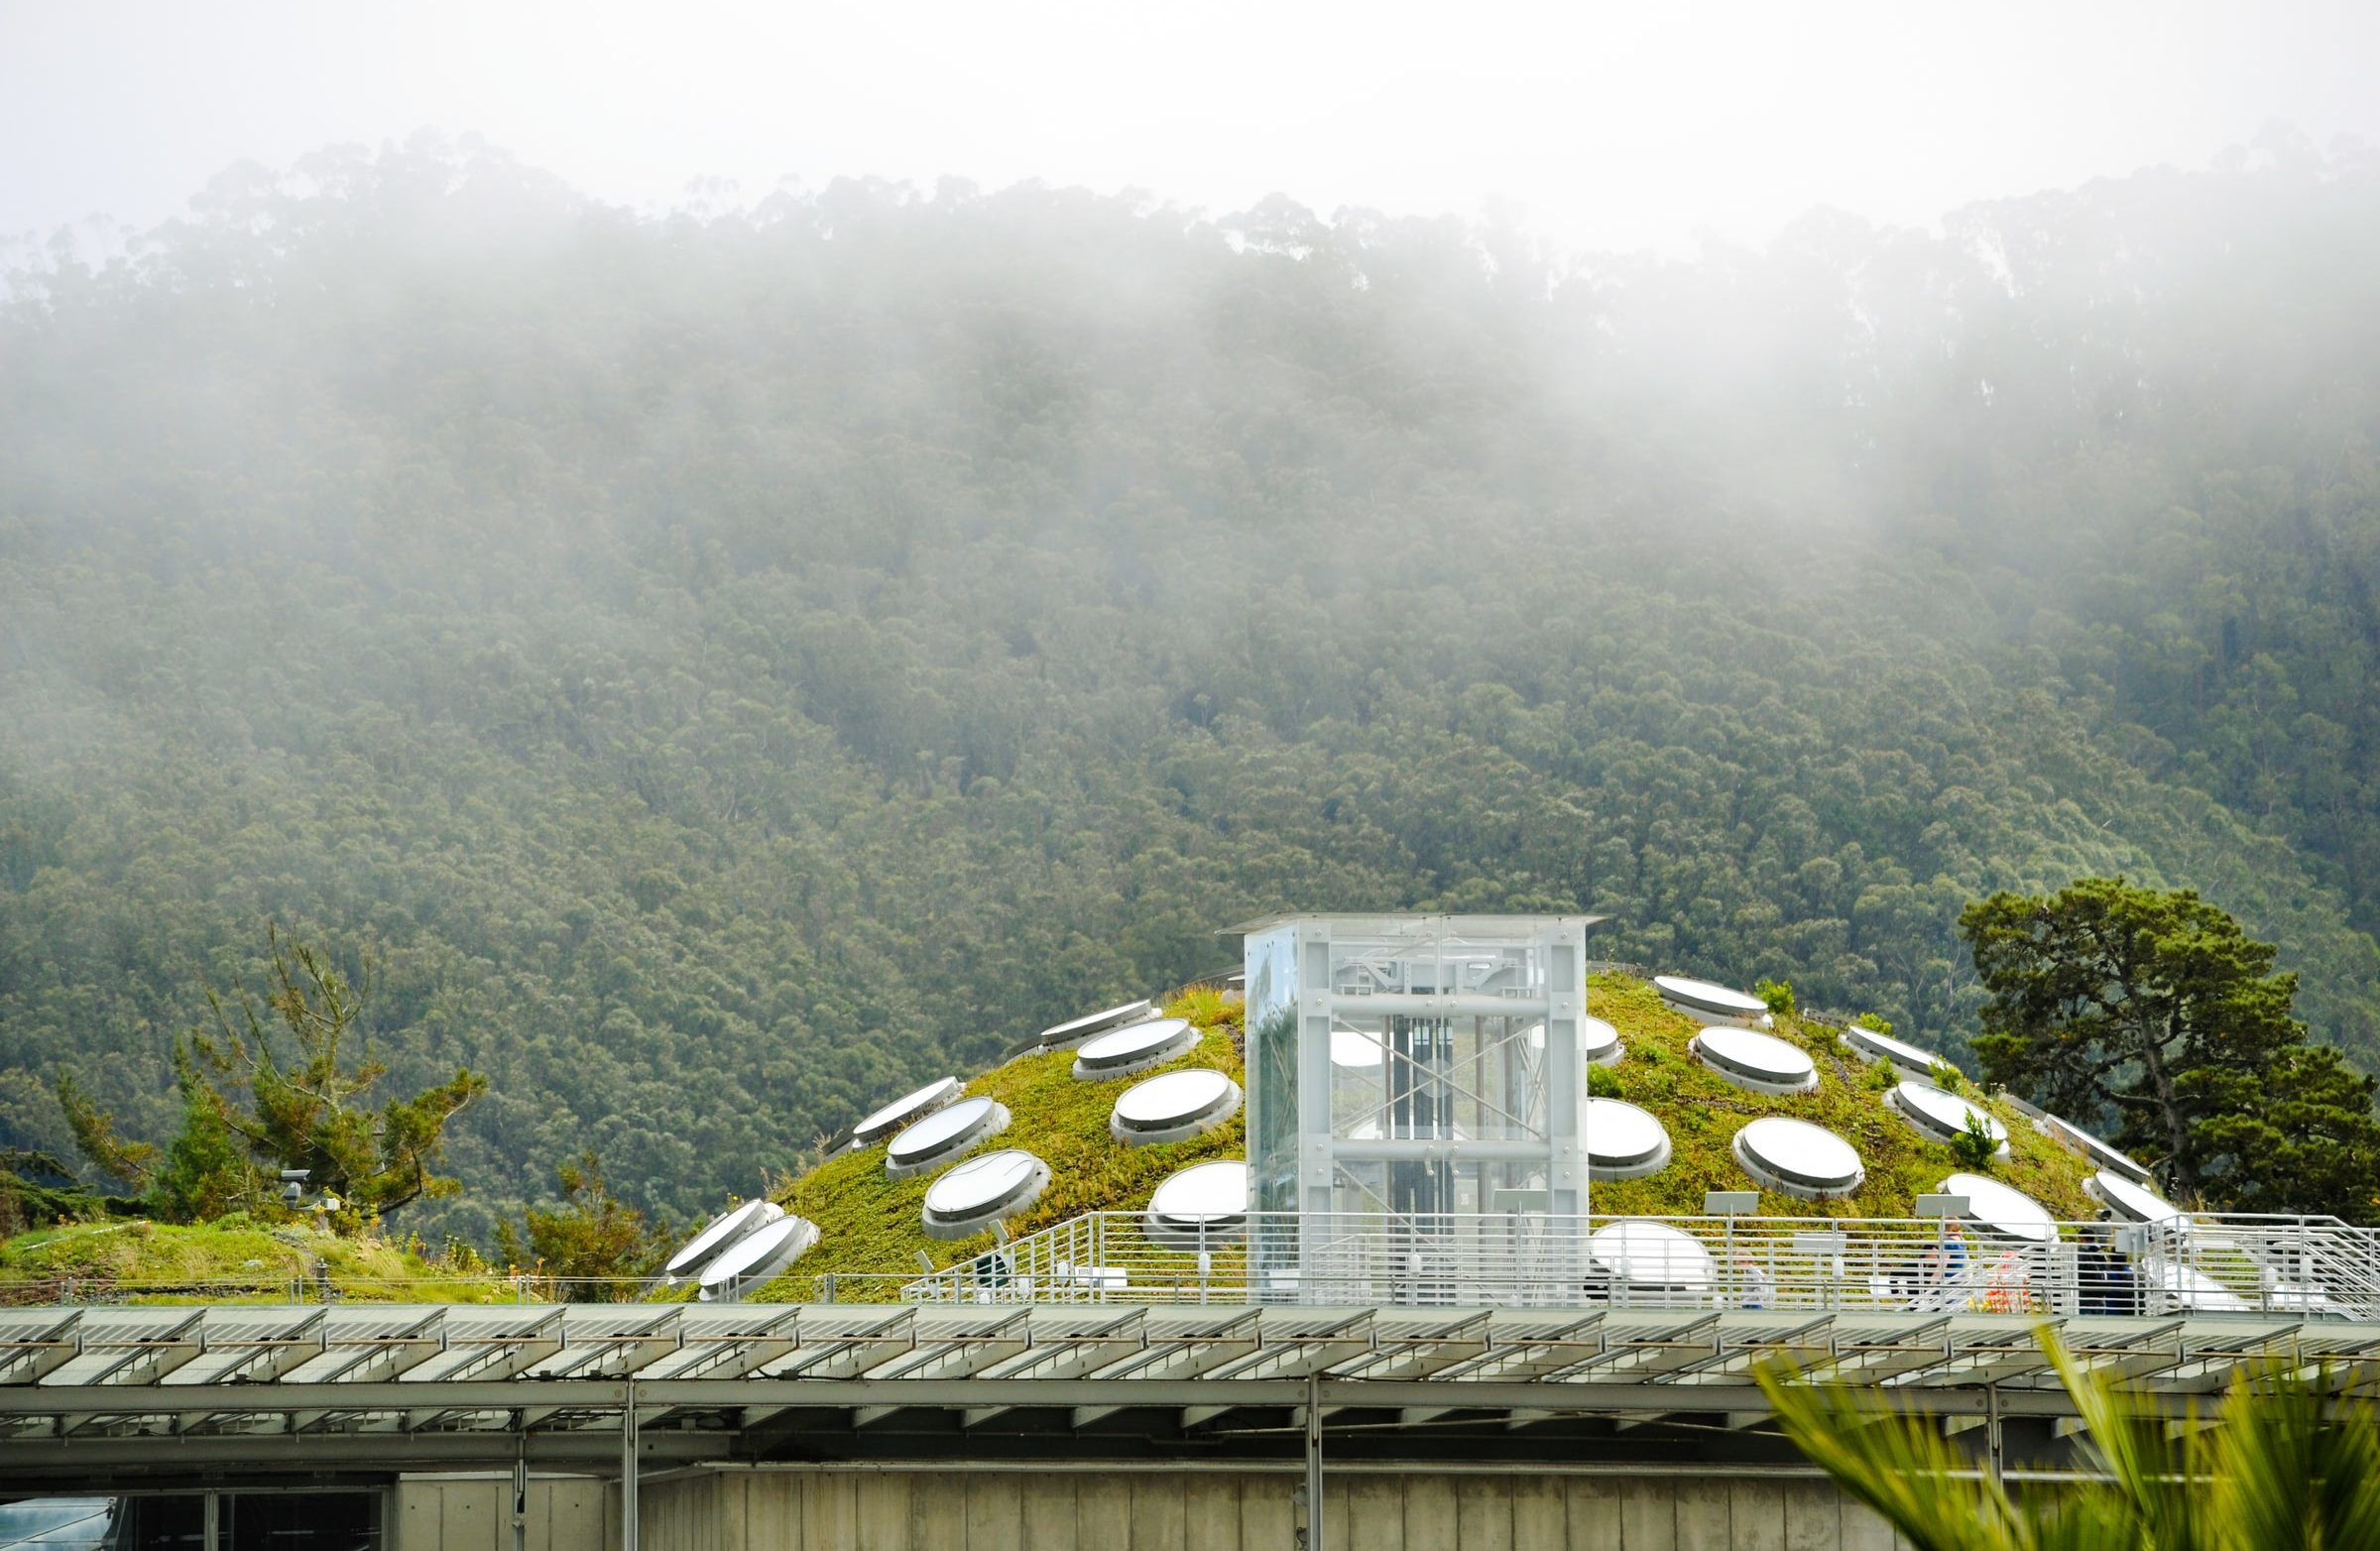 green roof at California Academy of Sciences in Golden Gate Park